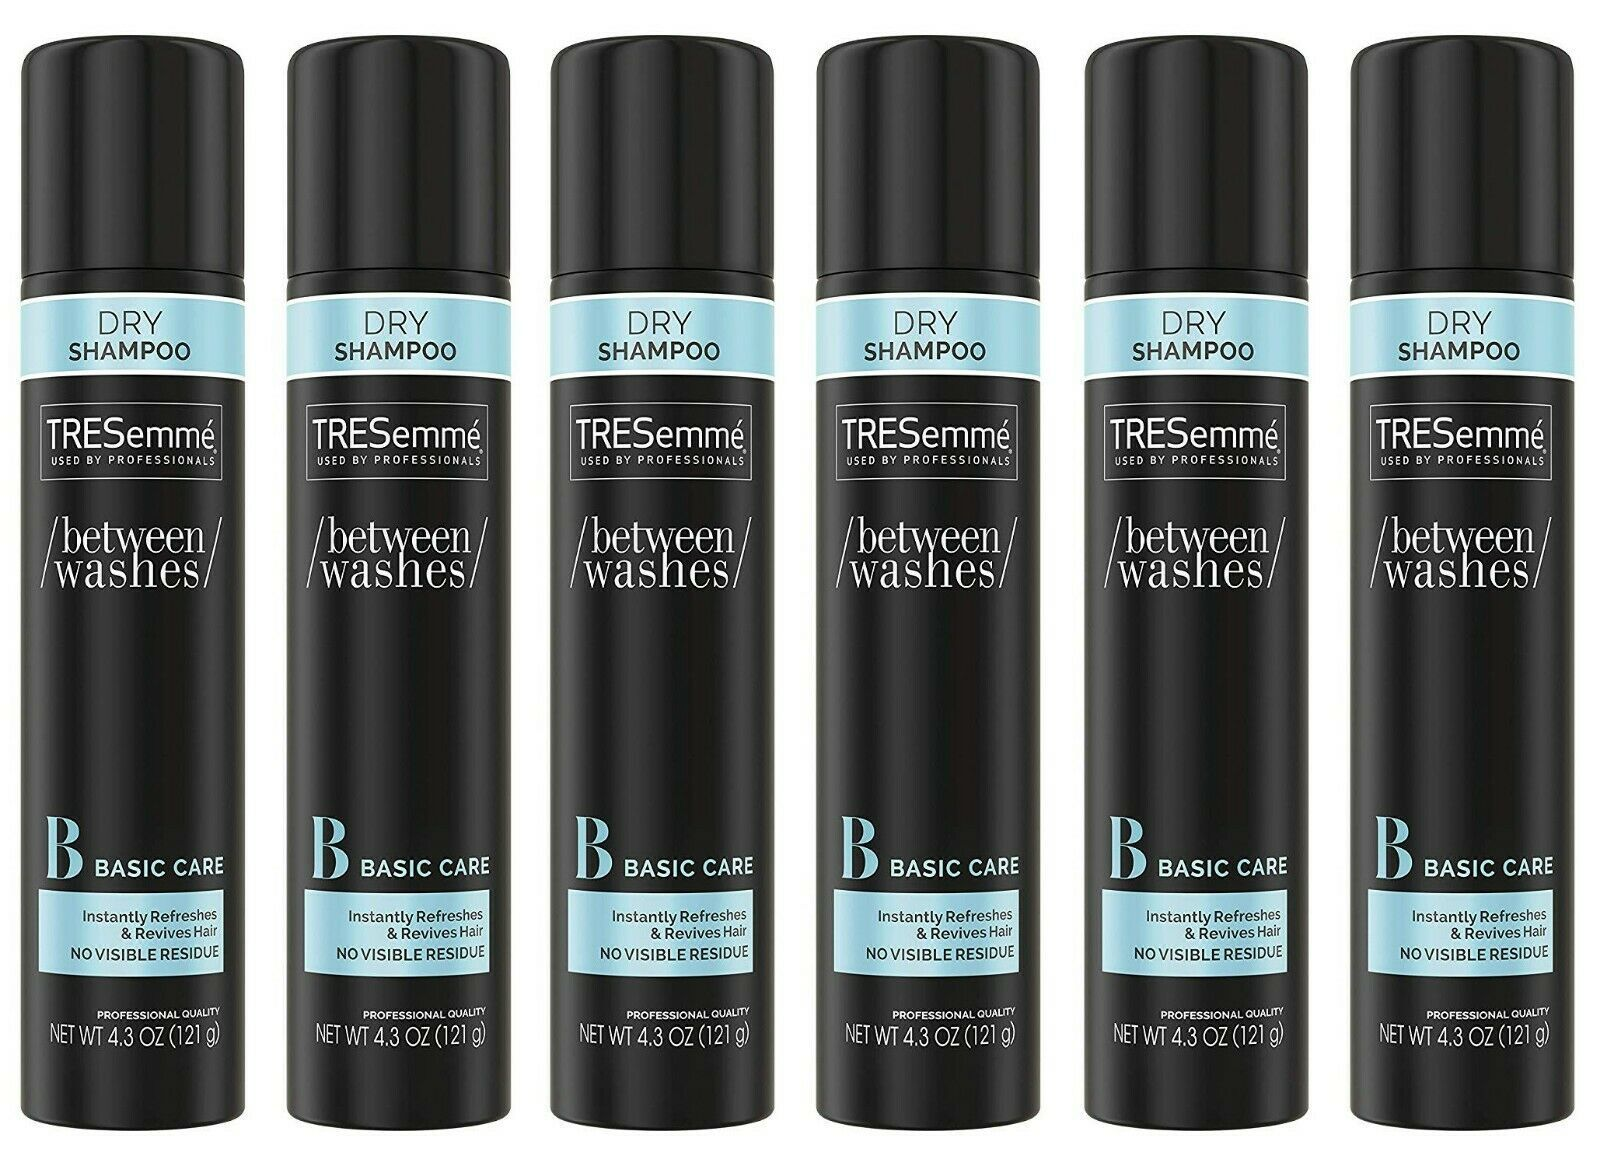 6 Pack of TRESemmé Dry SHAMPOO For Brittle Dry Hair 4.3oz each No Residue/Water